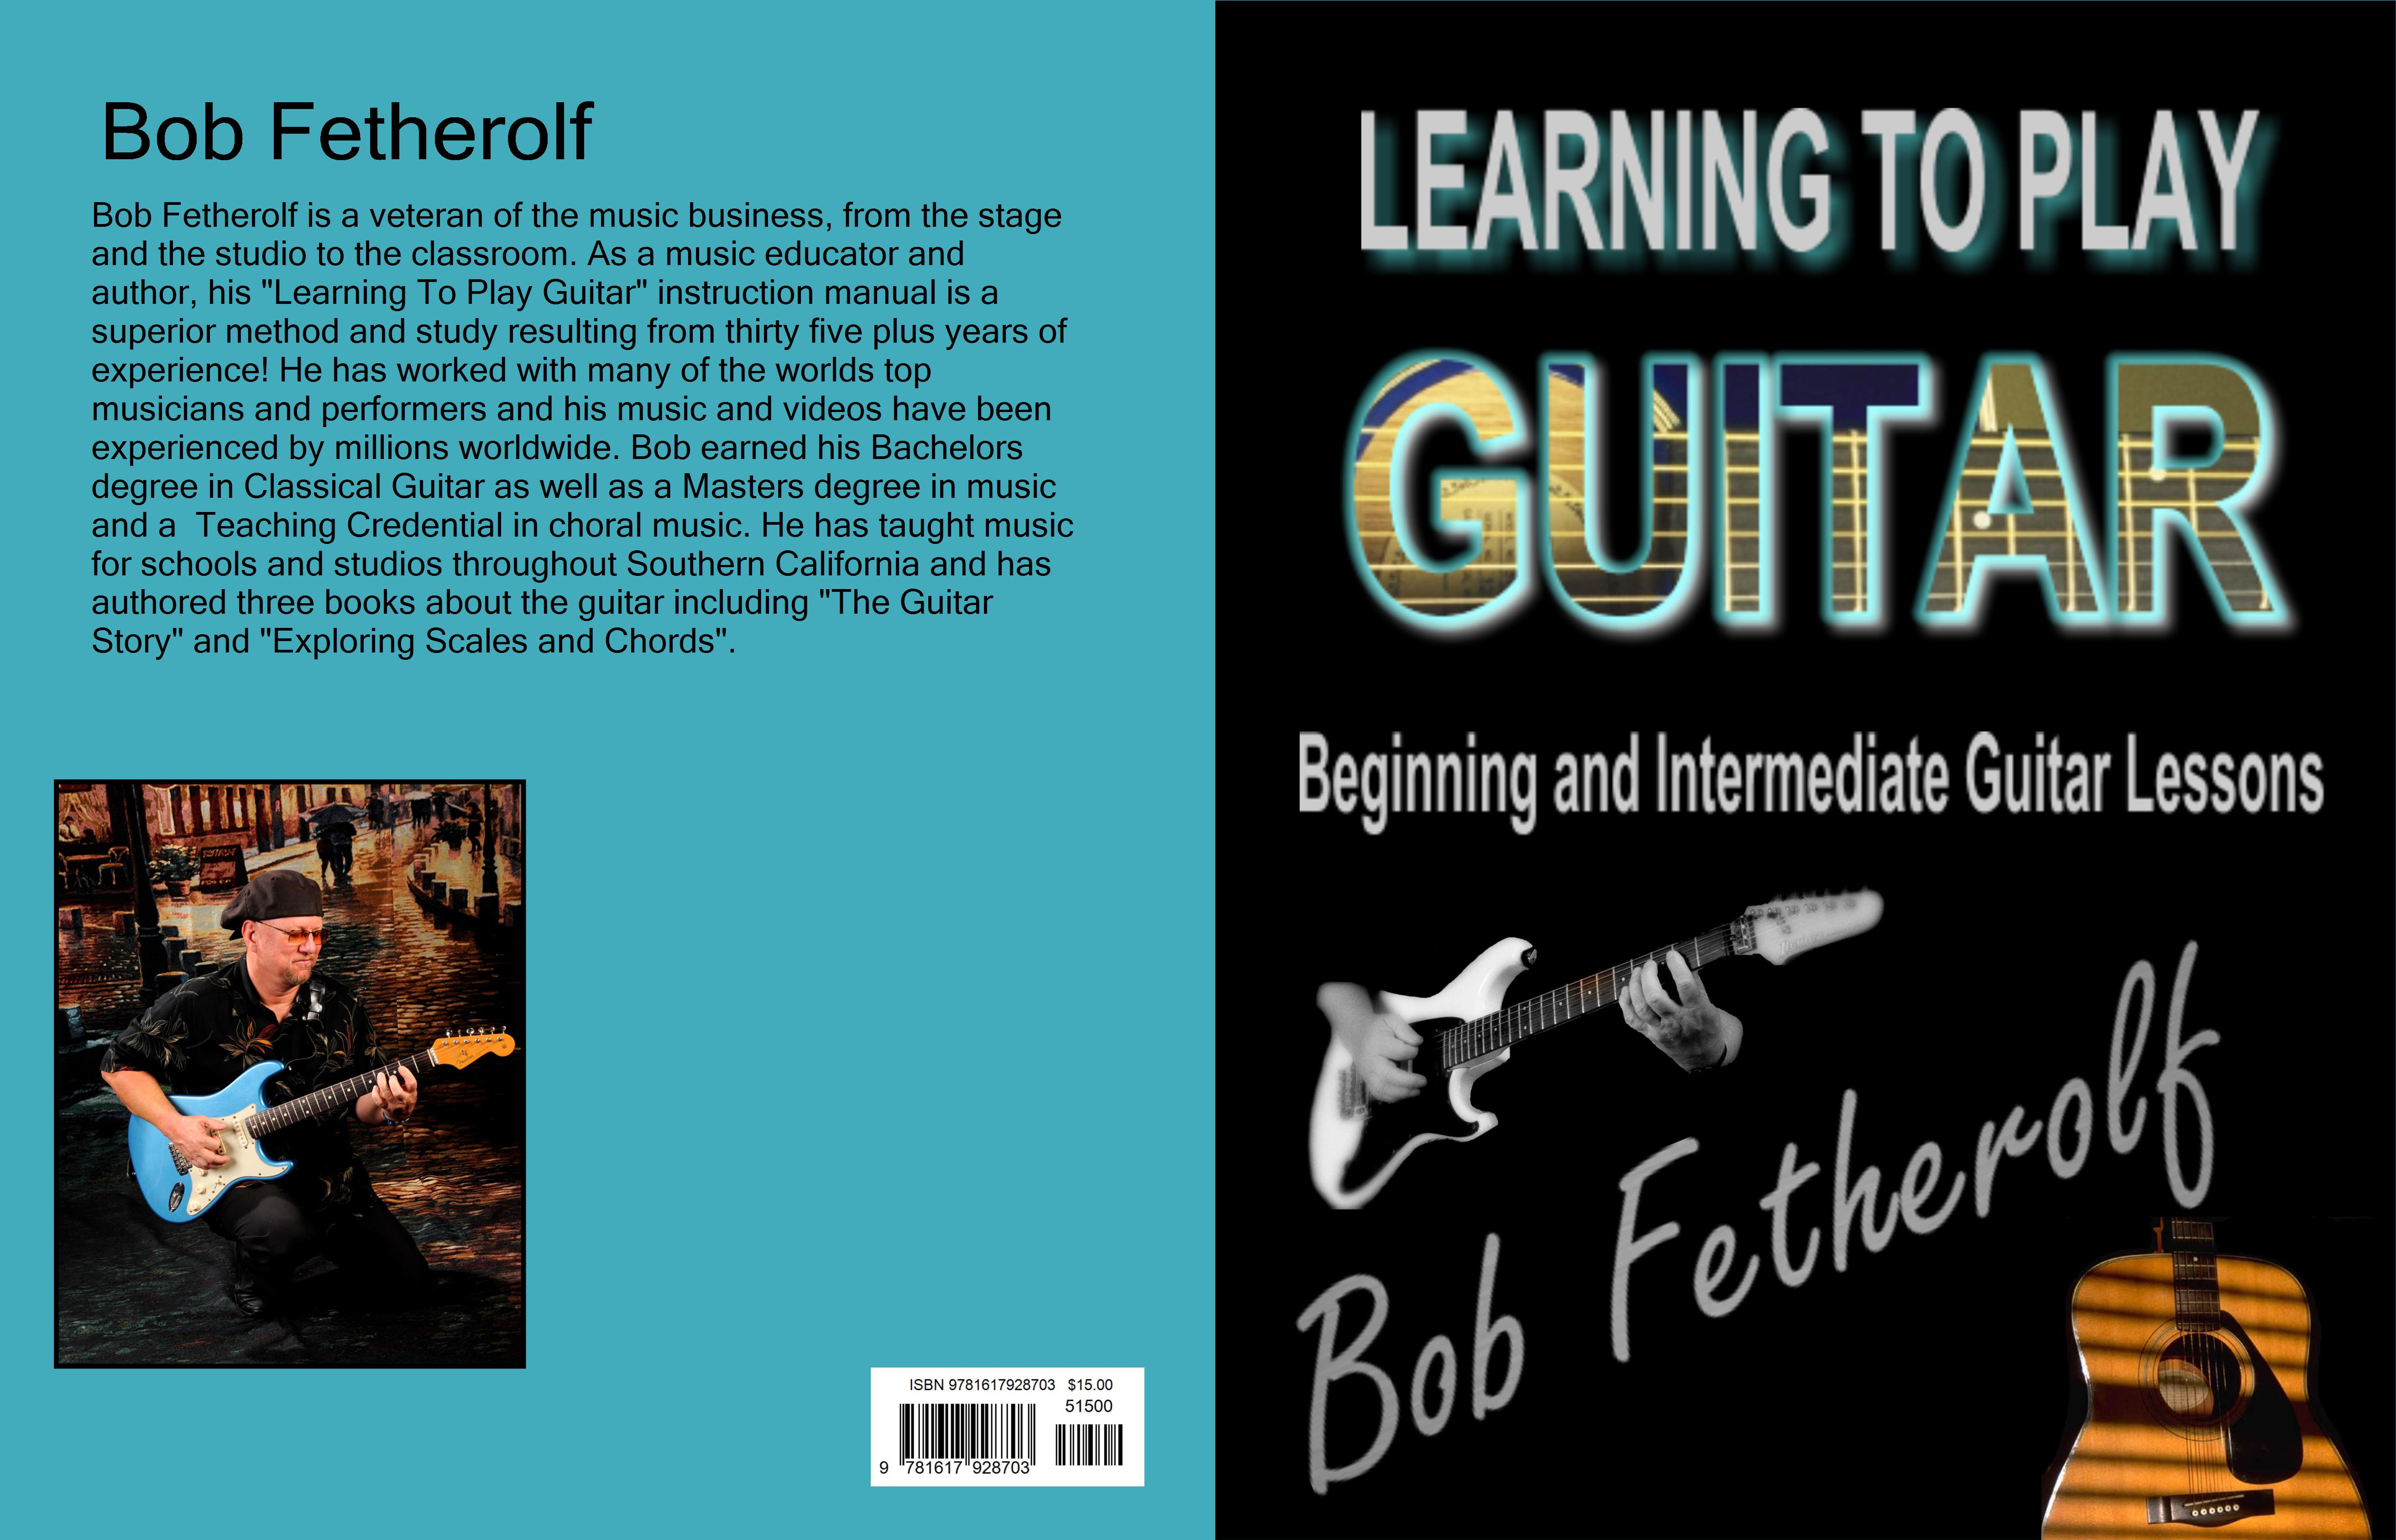 Learning To Play Guitar: Beginning and Intermediate Guitar Lessons cover image